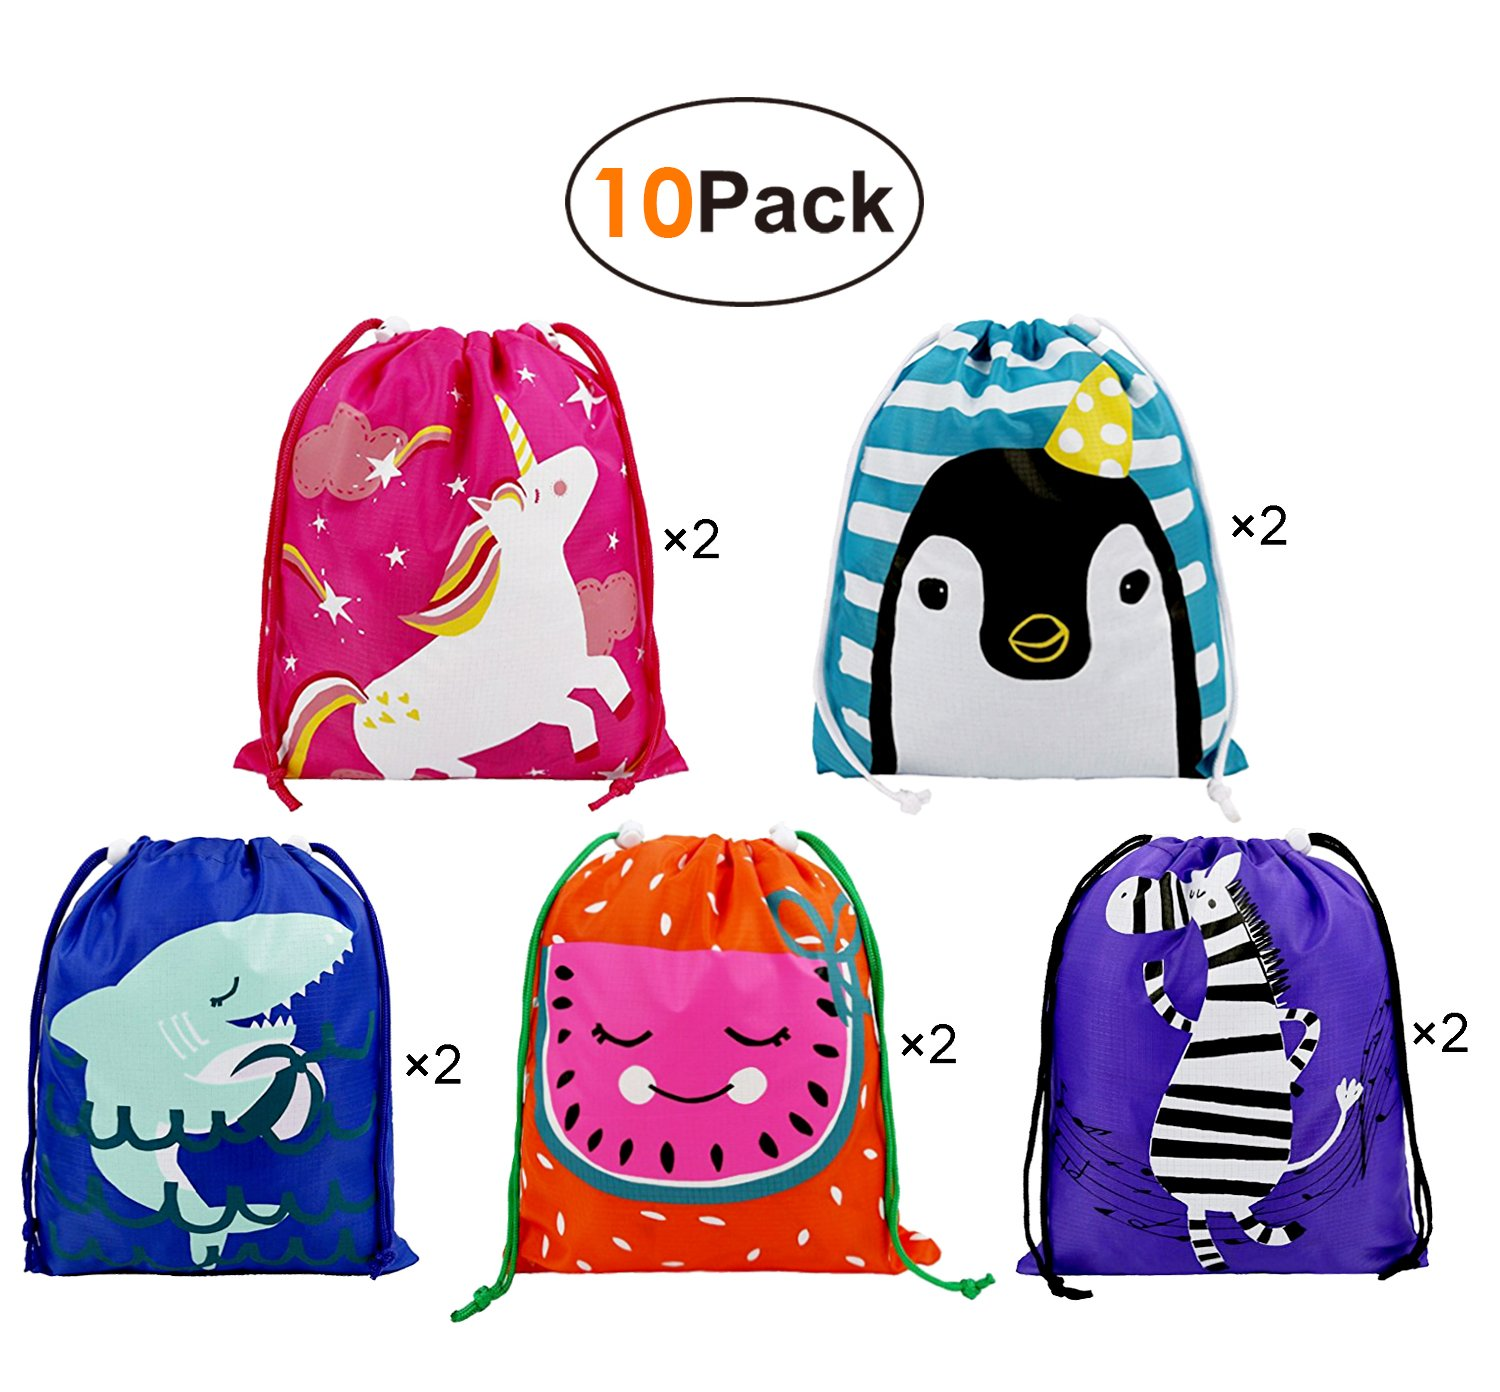 backpack clipart party favors